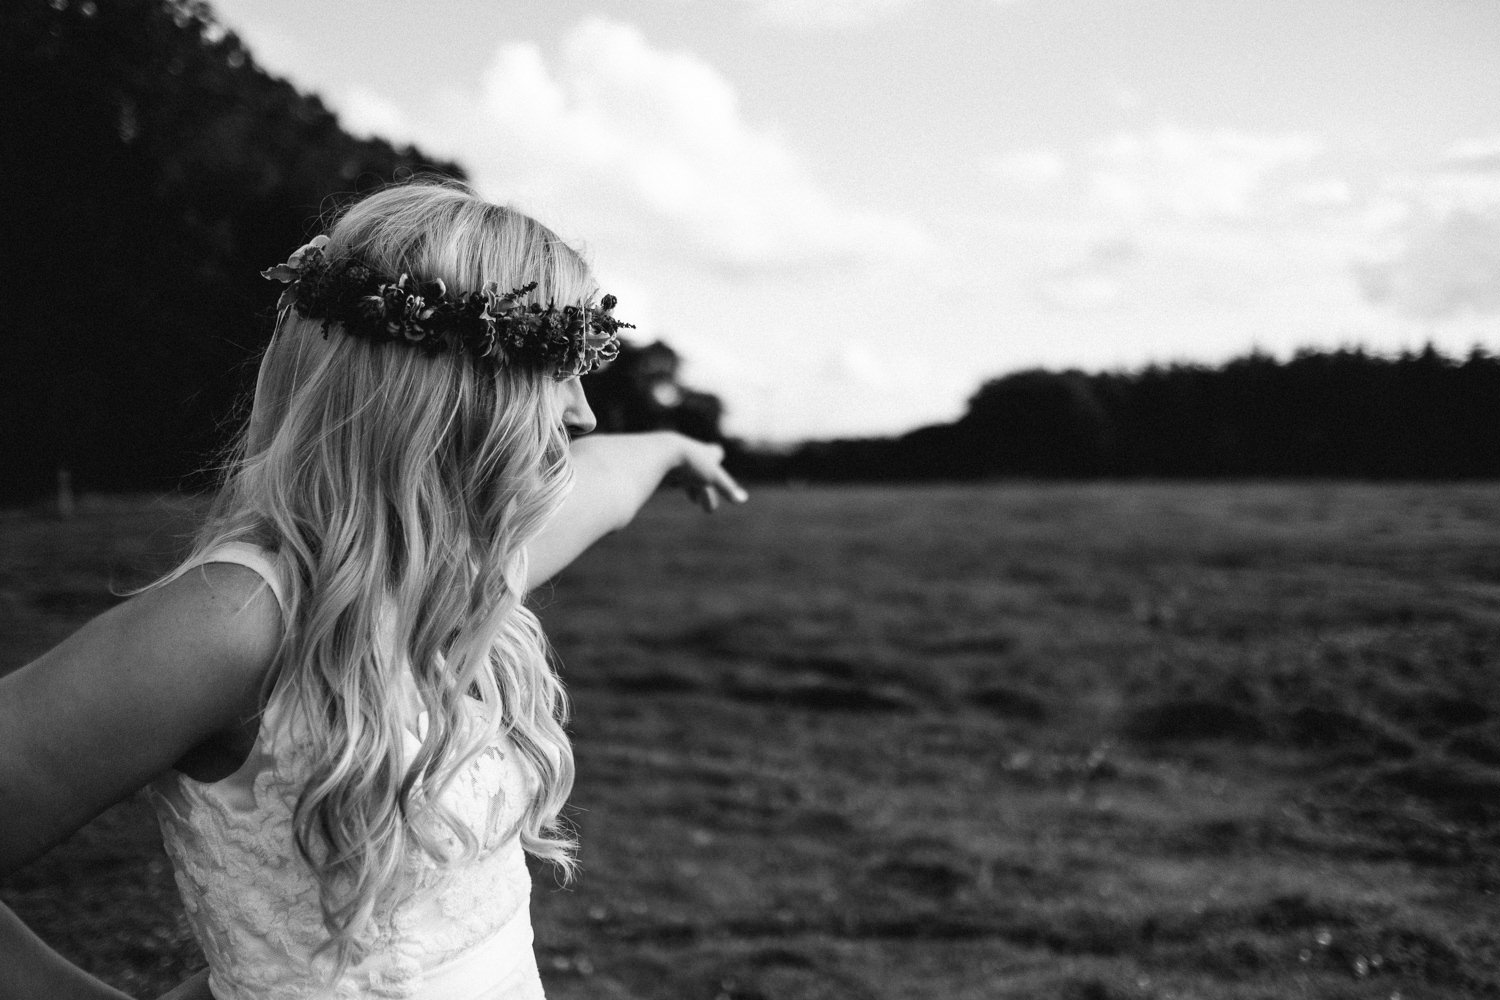 fuji xpro2 xt2 outdoor unposed candid wedding photography